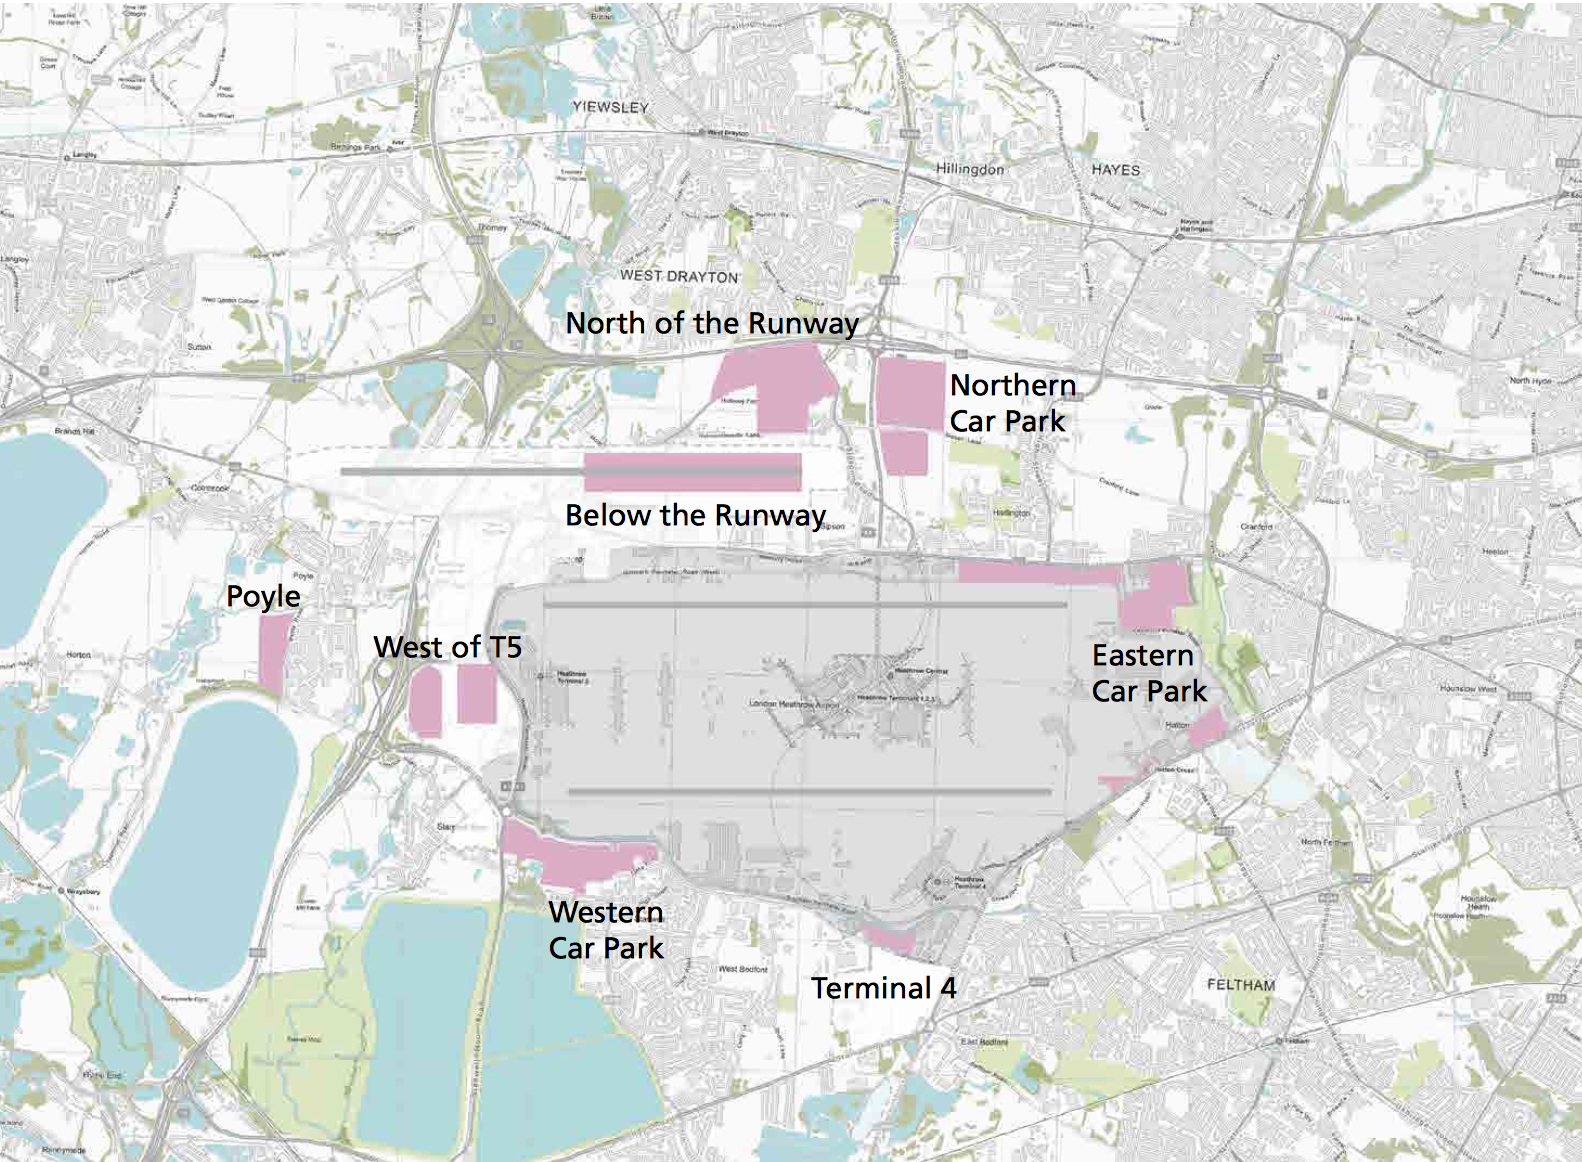 Figure showing the sites Heathrow want to build new cars parks